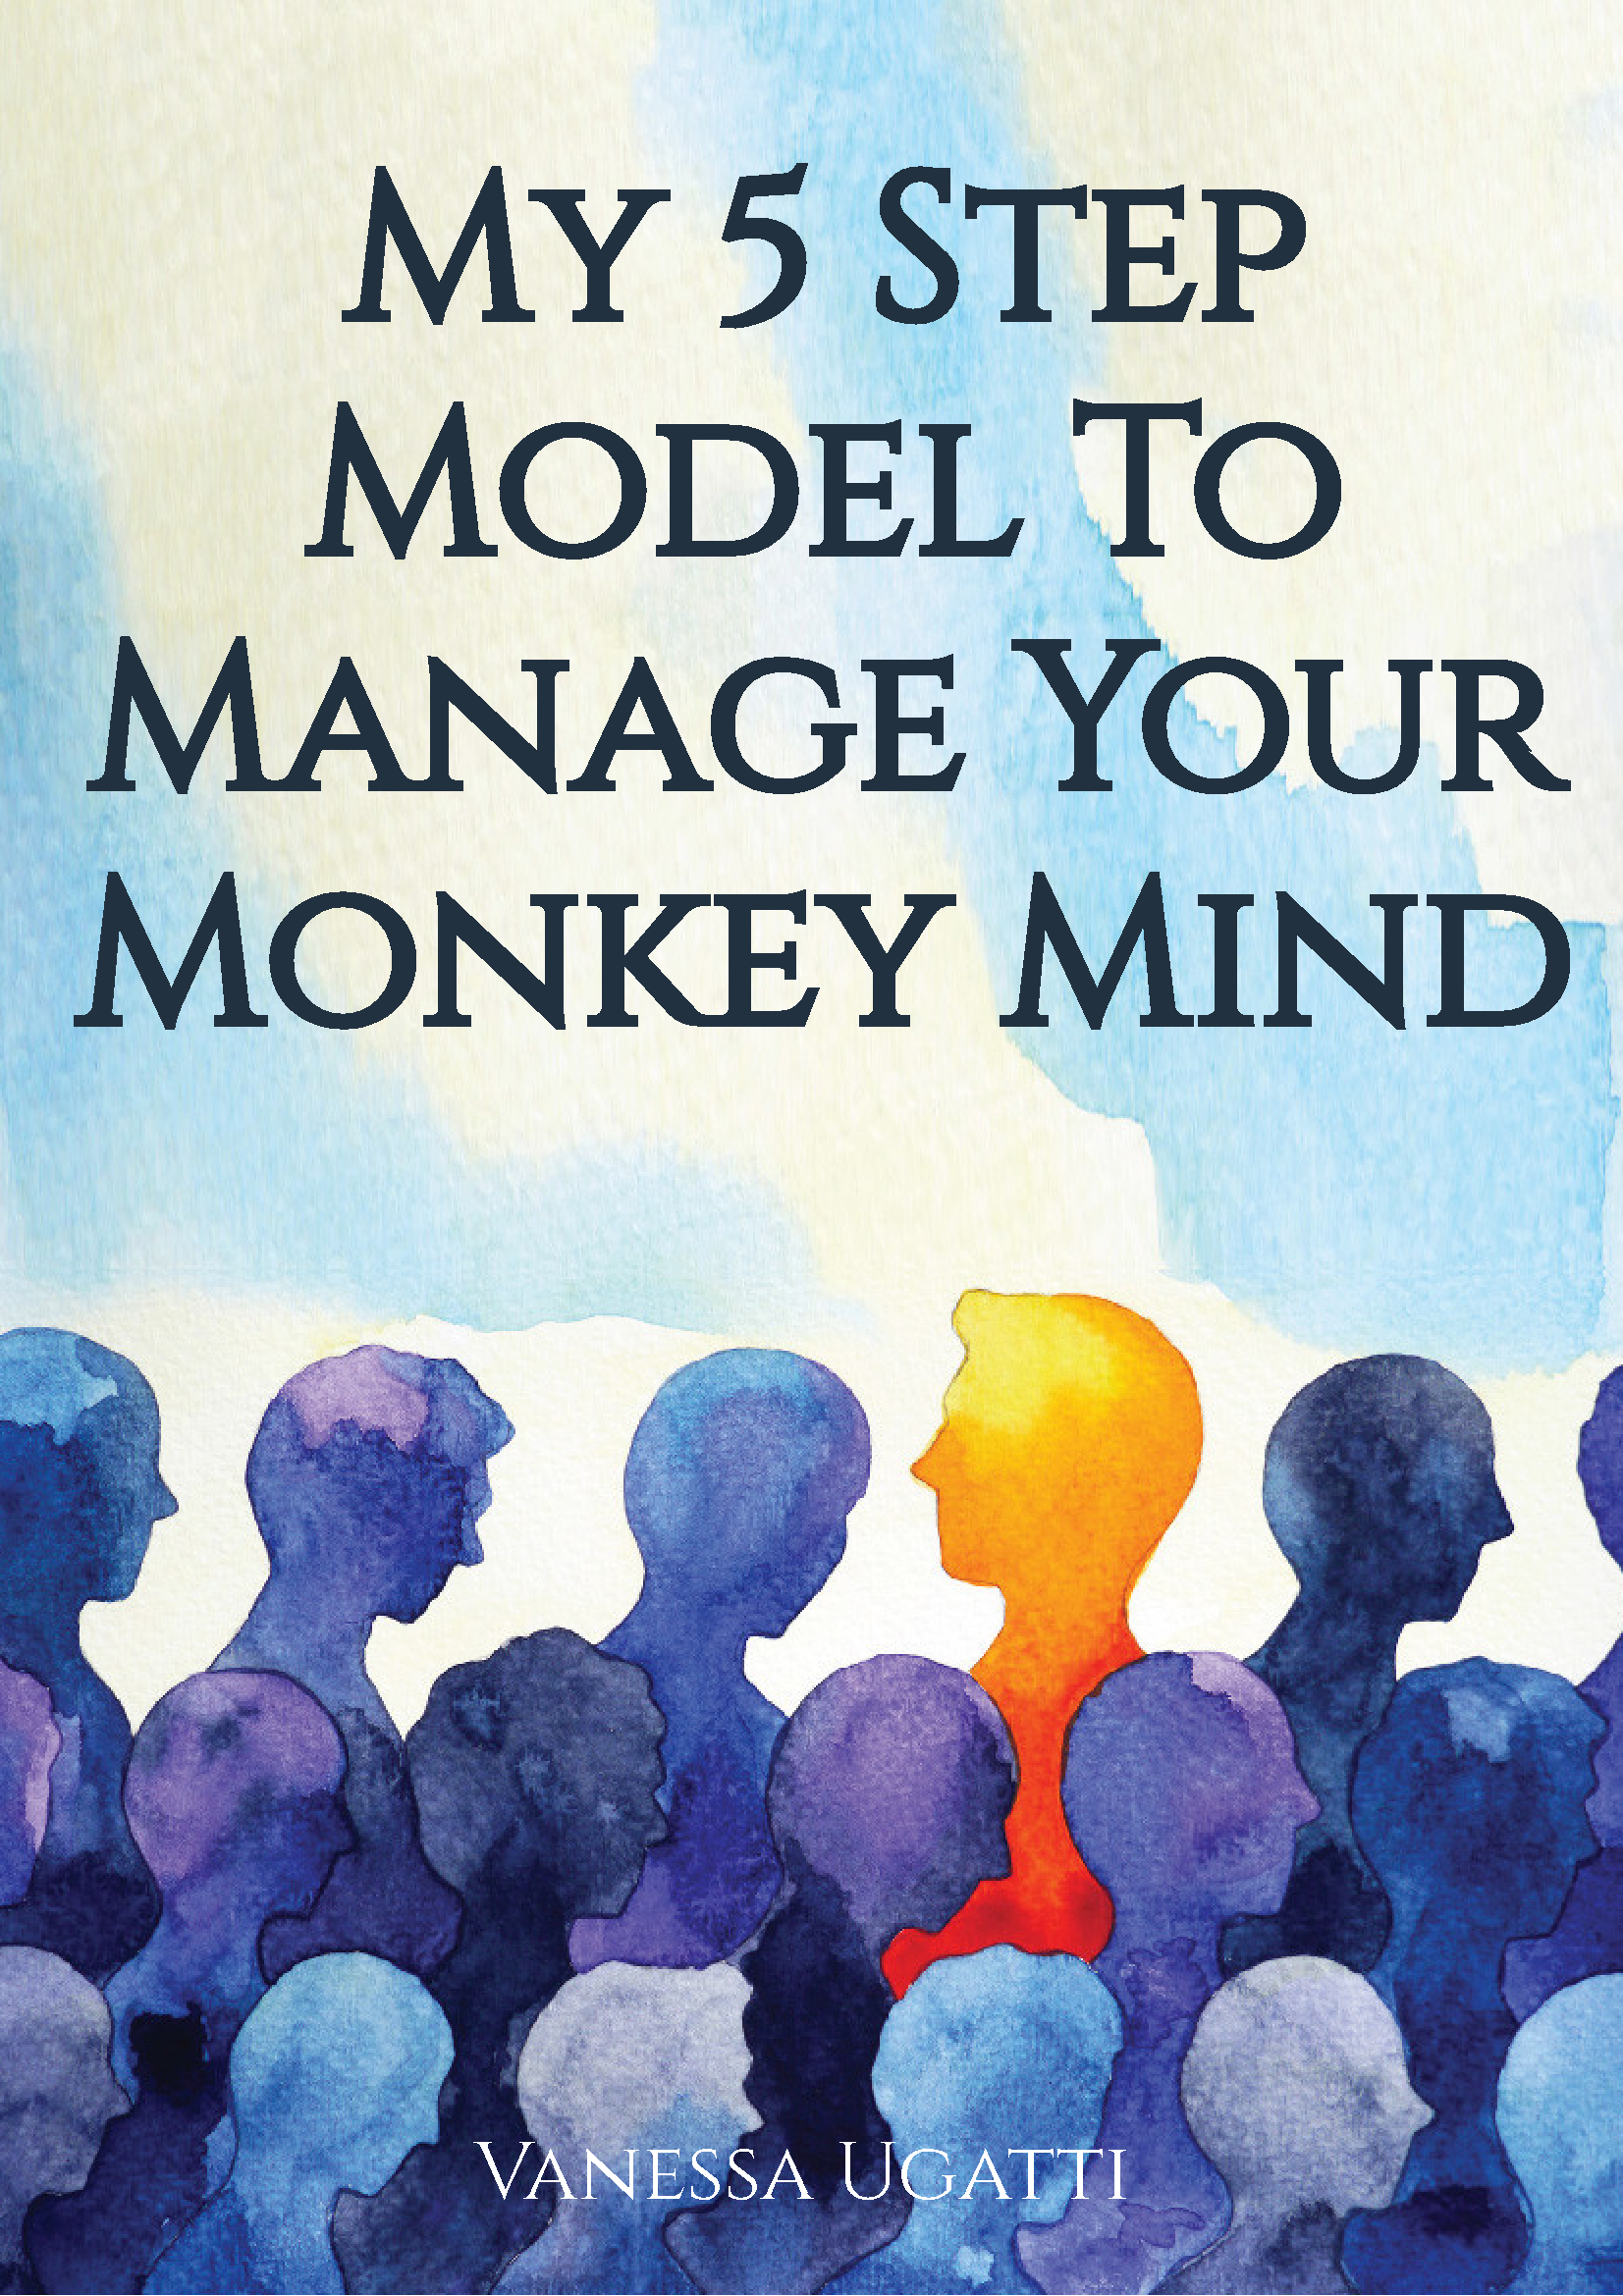 My 5 Step Model to Manage Your Monkey Mind by Vanessa Ugatti